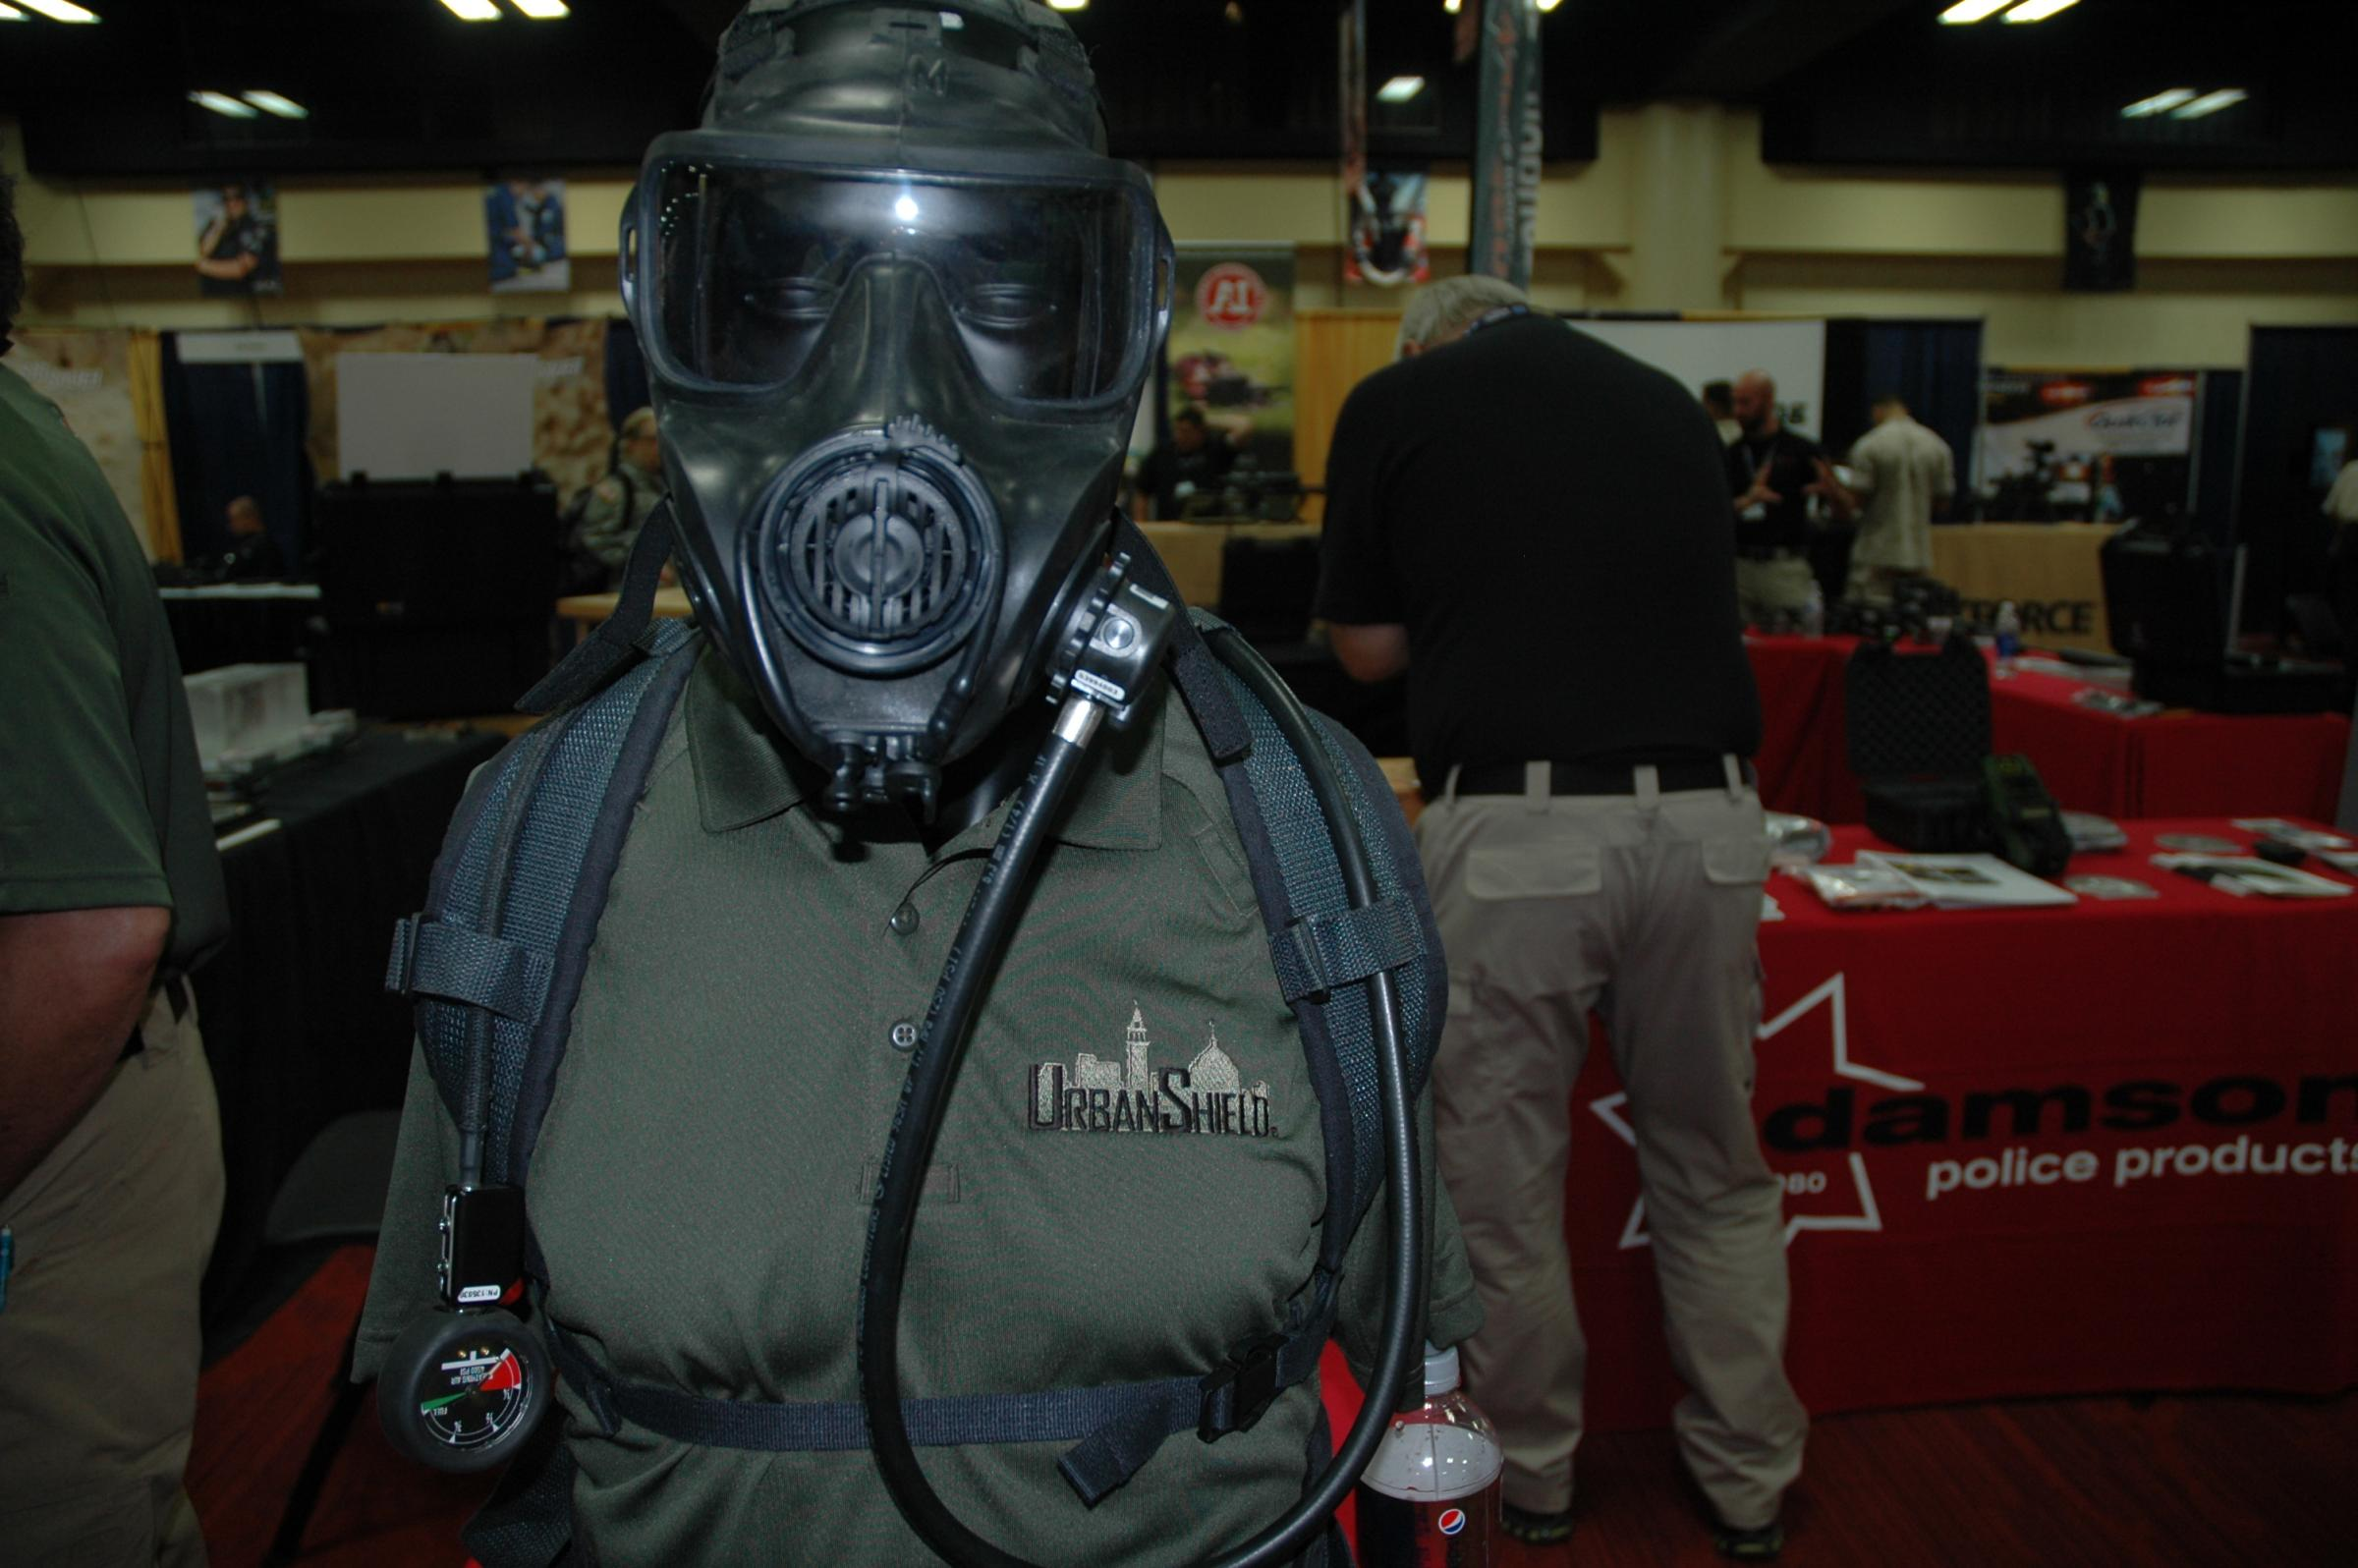 Caption: Inside the Urban Shield trade show, Credit: Sandhya Dirks